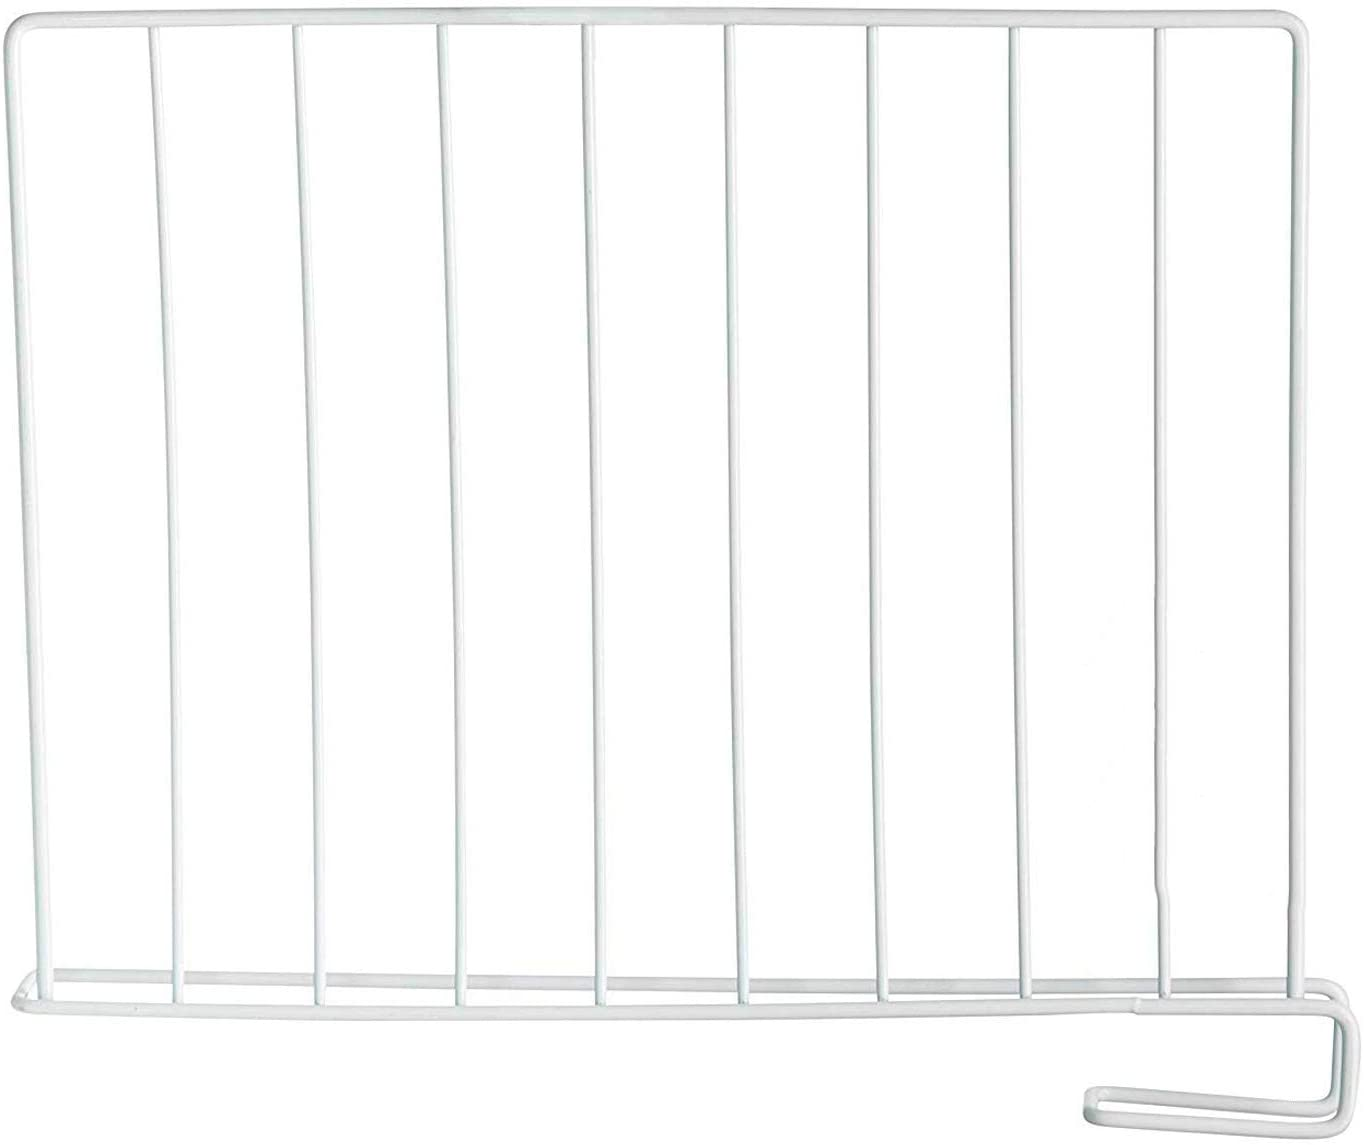 StorageMaid Wood Shelf Divider for Closets, Purses, Wood Shelves, Book Shelves and Libraries - Multi-Functional Organizers for Home and Office - Set of 8